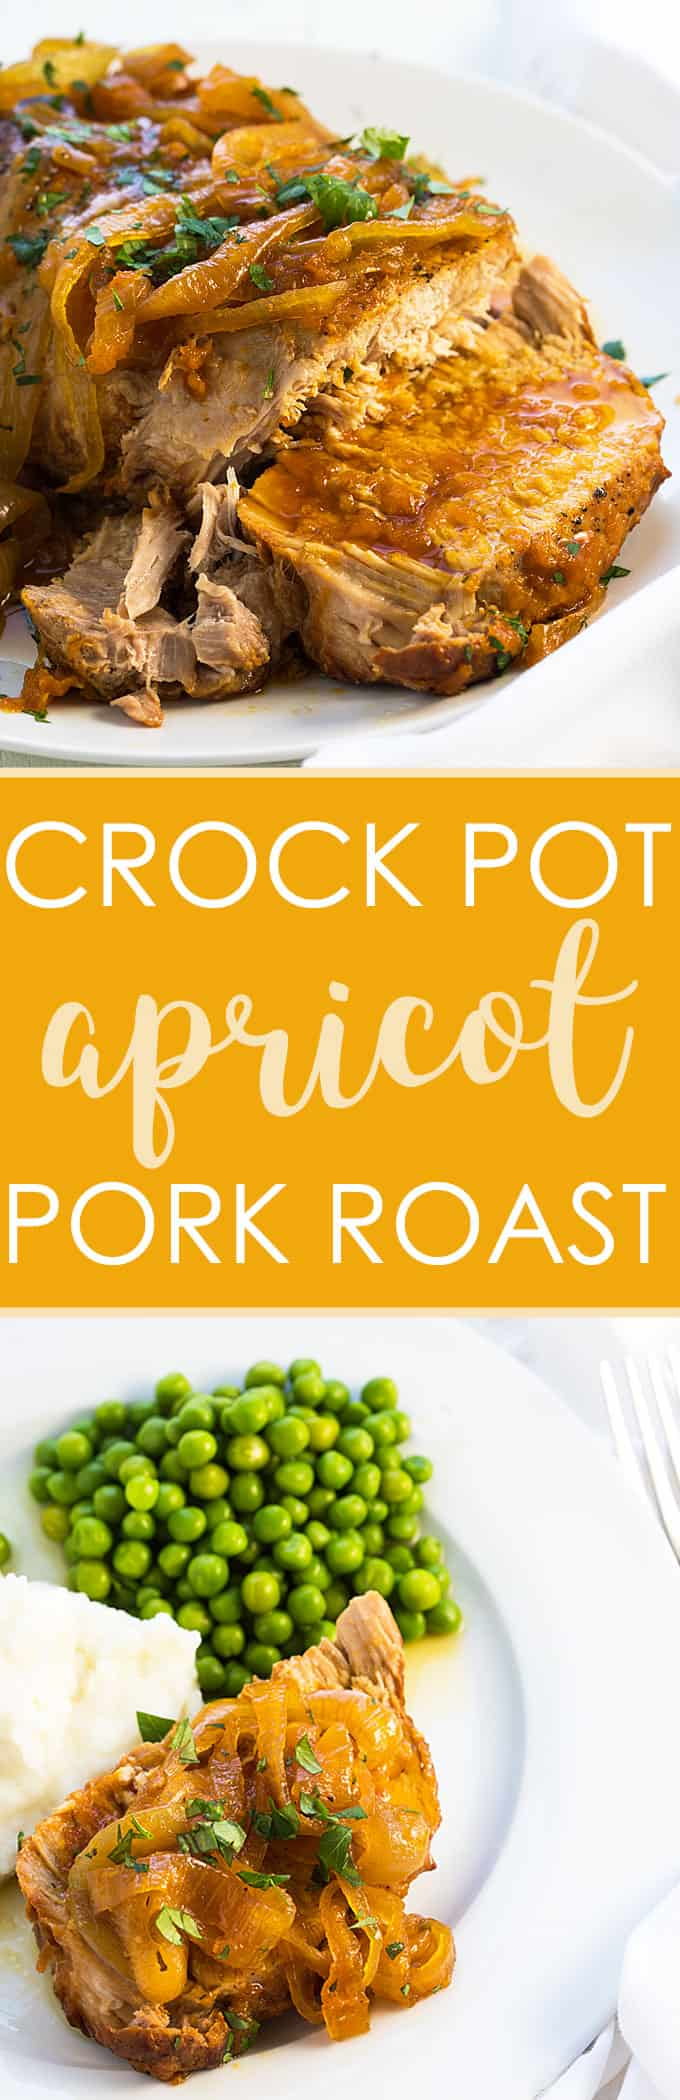 Crock Pot Apricot Pork Roast - Just 15 minutes prep time is needed for the most incredibly tender and flavorful pork roast!